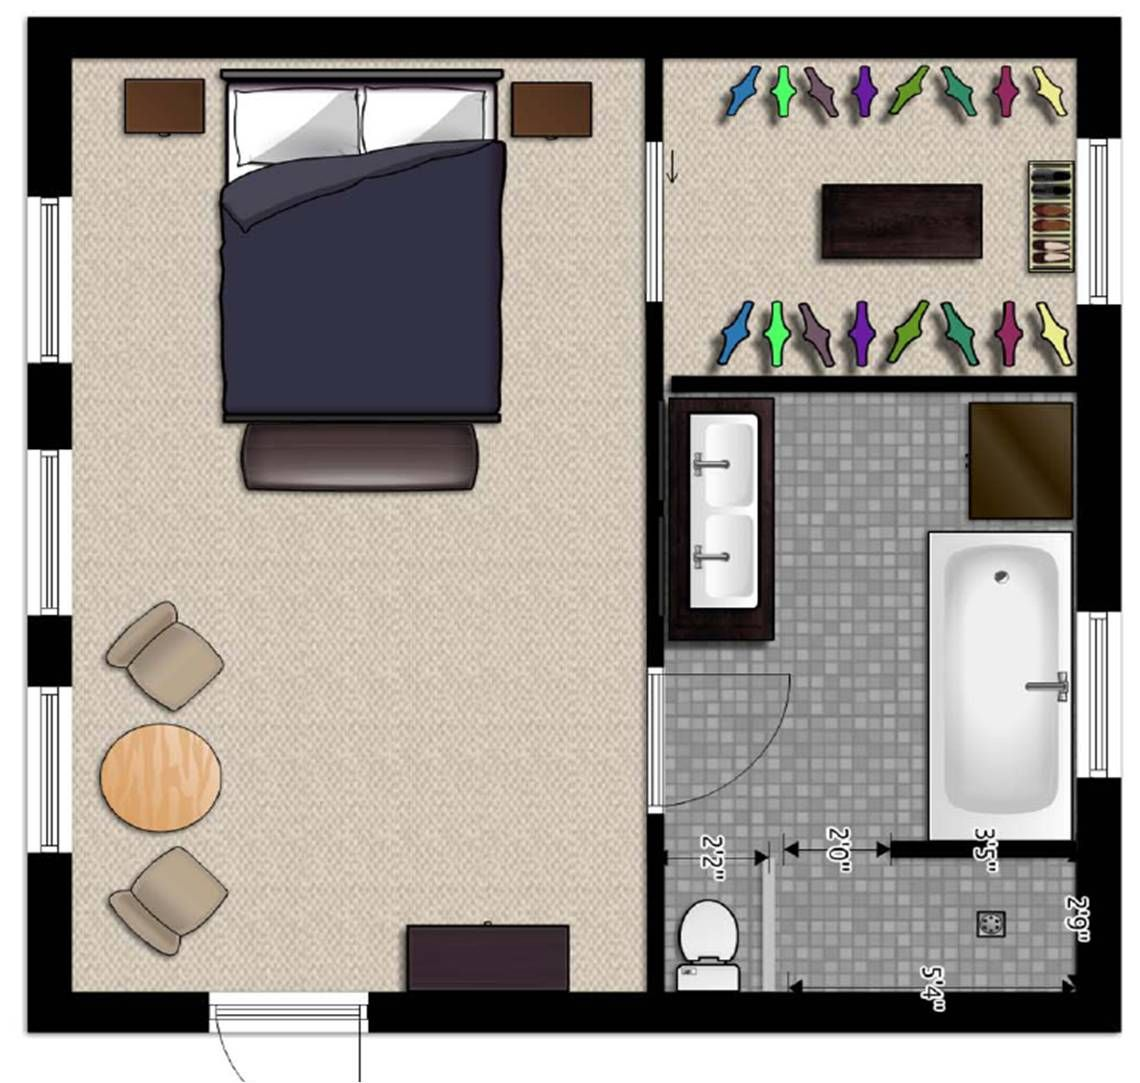 Modern master bedroom floor plans - Master Suite Floor Plans In Easy Flow Design Large For Simple Plan Idea In First Floor Modern Style Suite Floor Plans Design Bedroom And Bathroom In